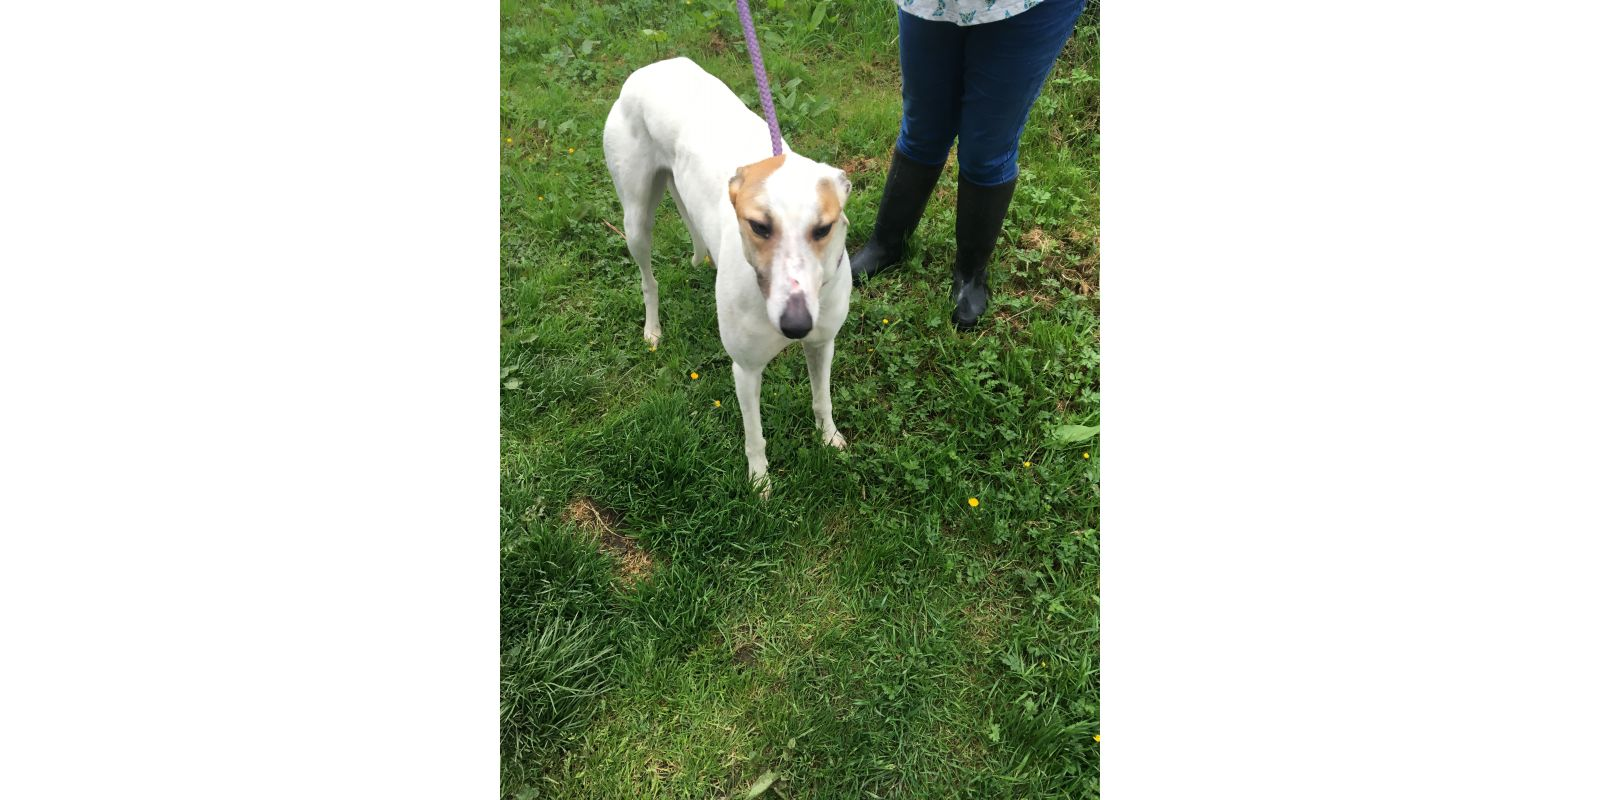 New dog listed for rescue at the West Scotland Retired Greyhound Trust - Molly